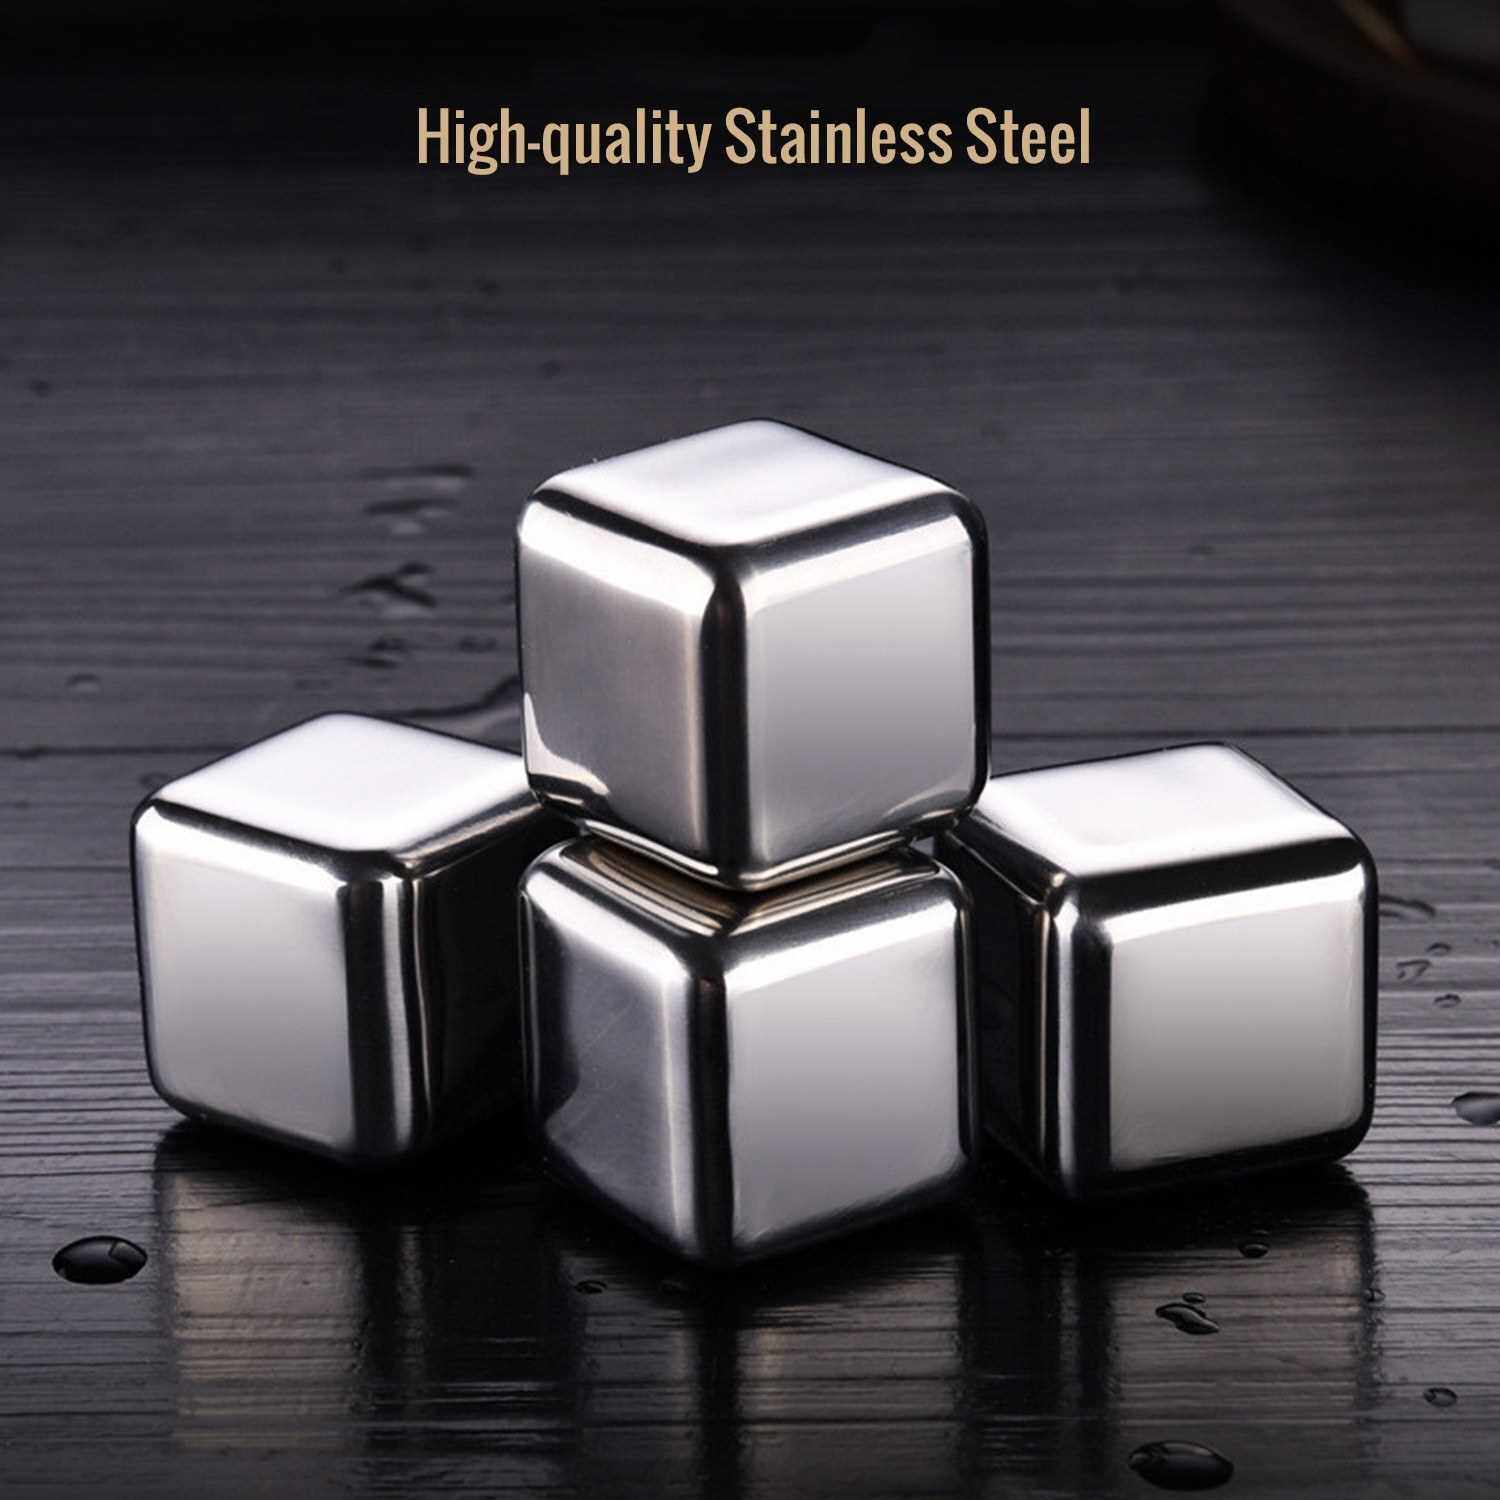 Best Selling 304 Stainless Steel Ice Cube Set of 4 Reusable Chilling Stones with Plastic Case for Whiskey, Vodka, Beer, Wine, Drinks (Standard)